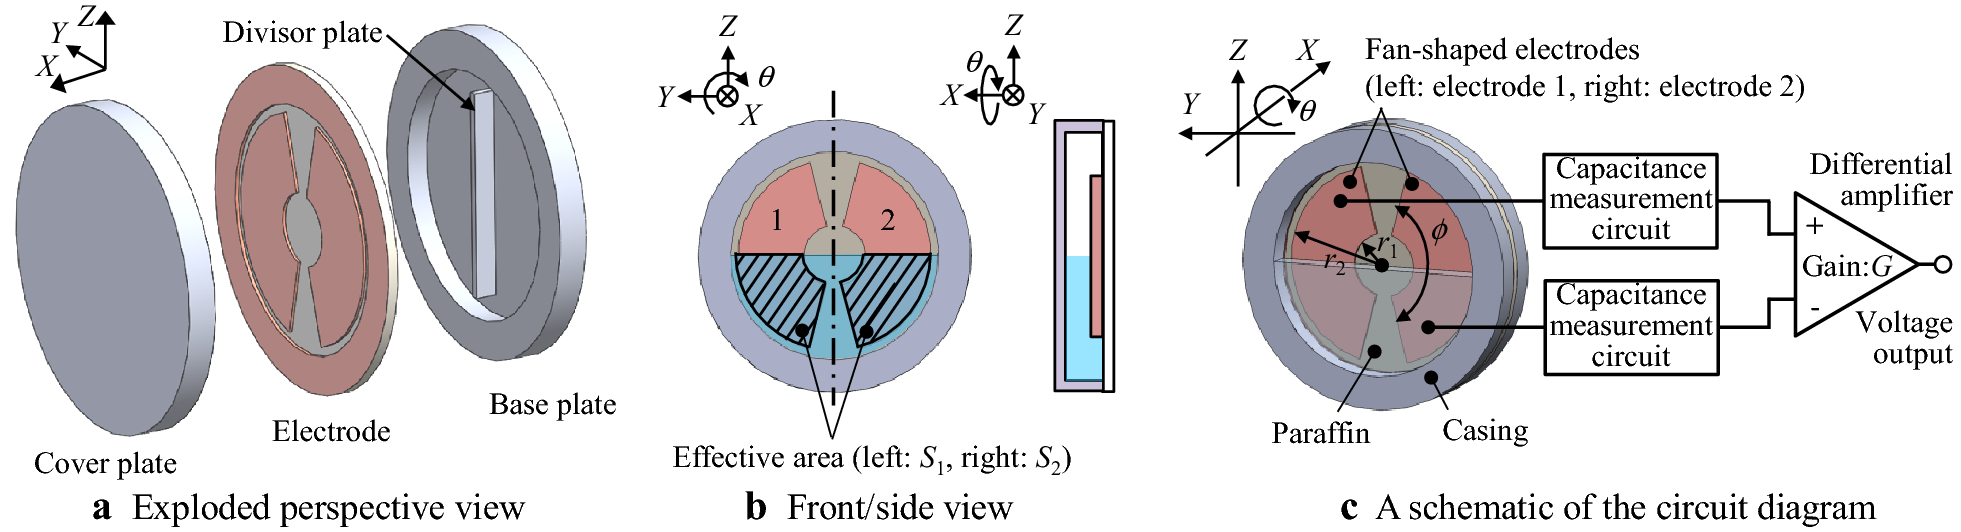 High Resolution Clinometers For Measurement Of Roll Error Motion Open Parallel Circuit Diagram Image In New Window